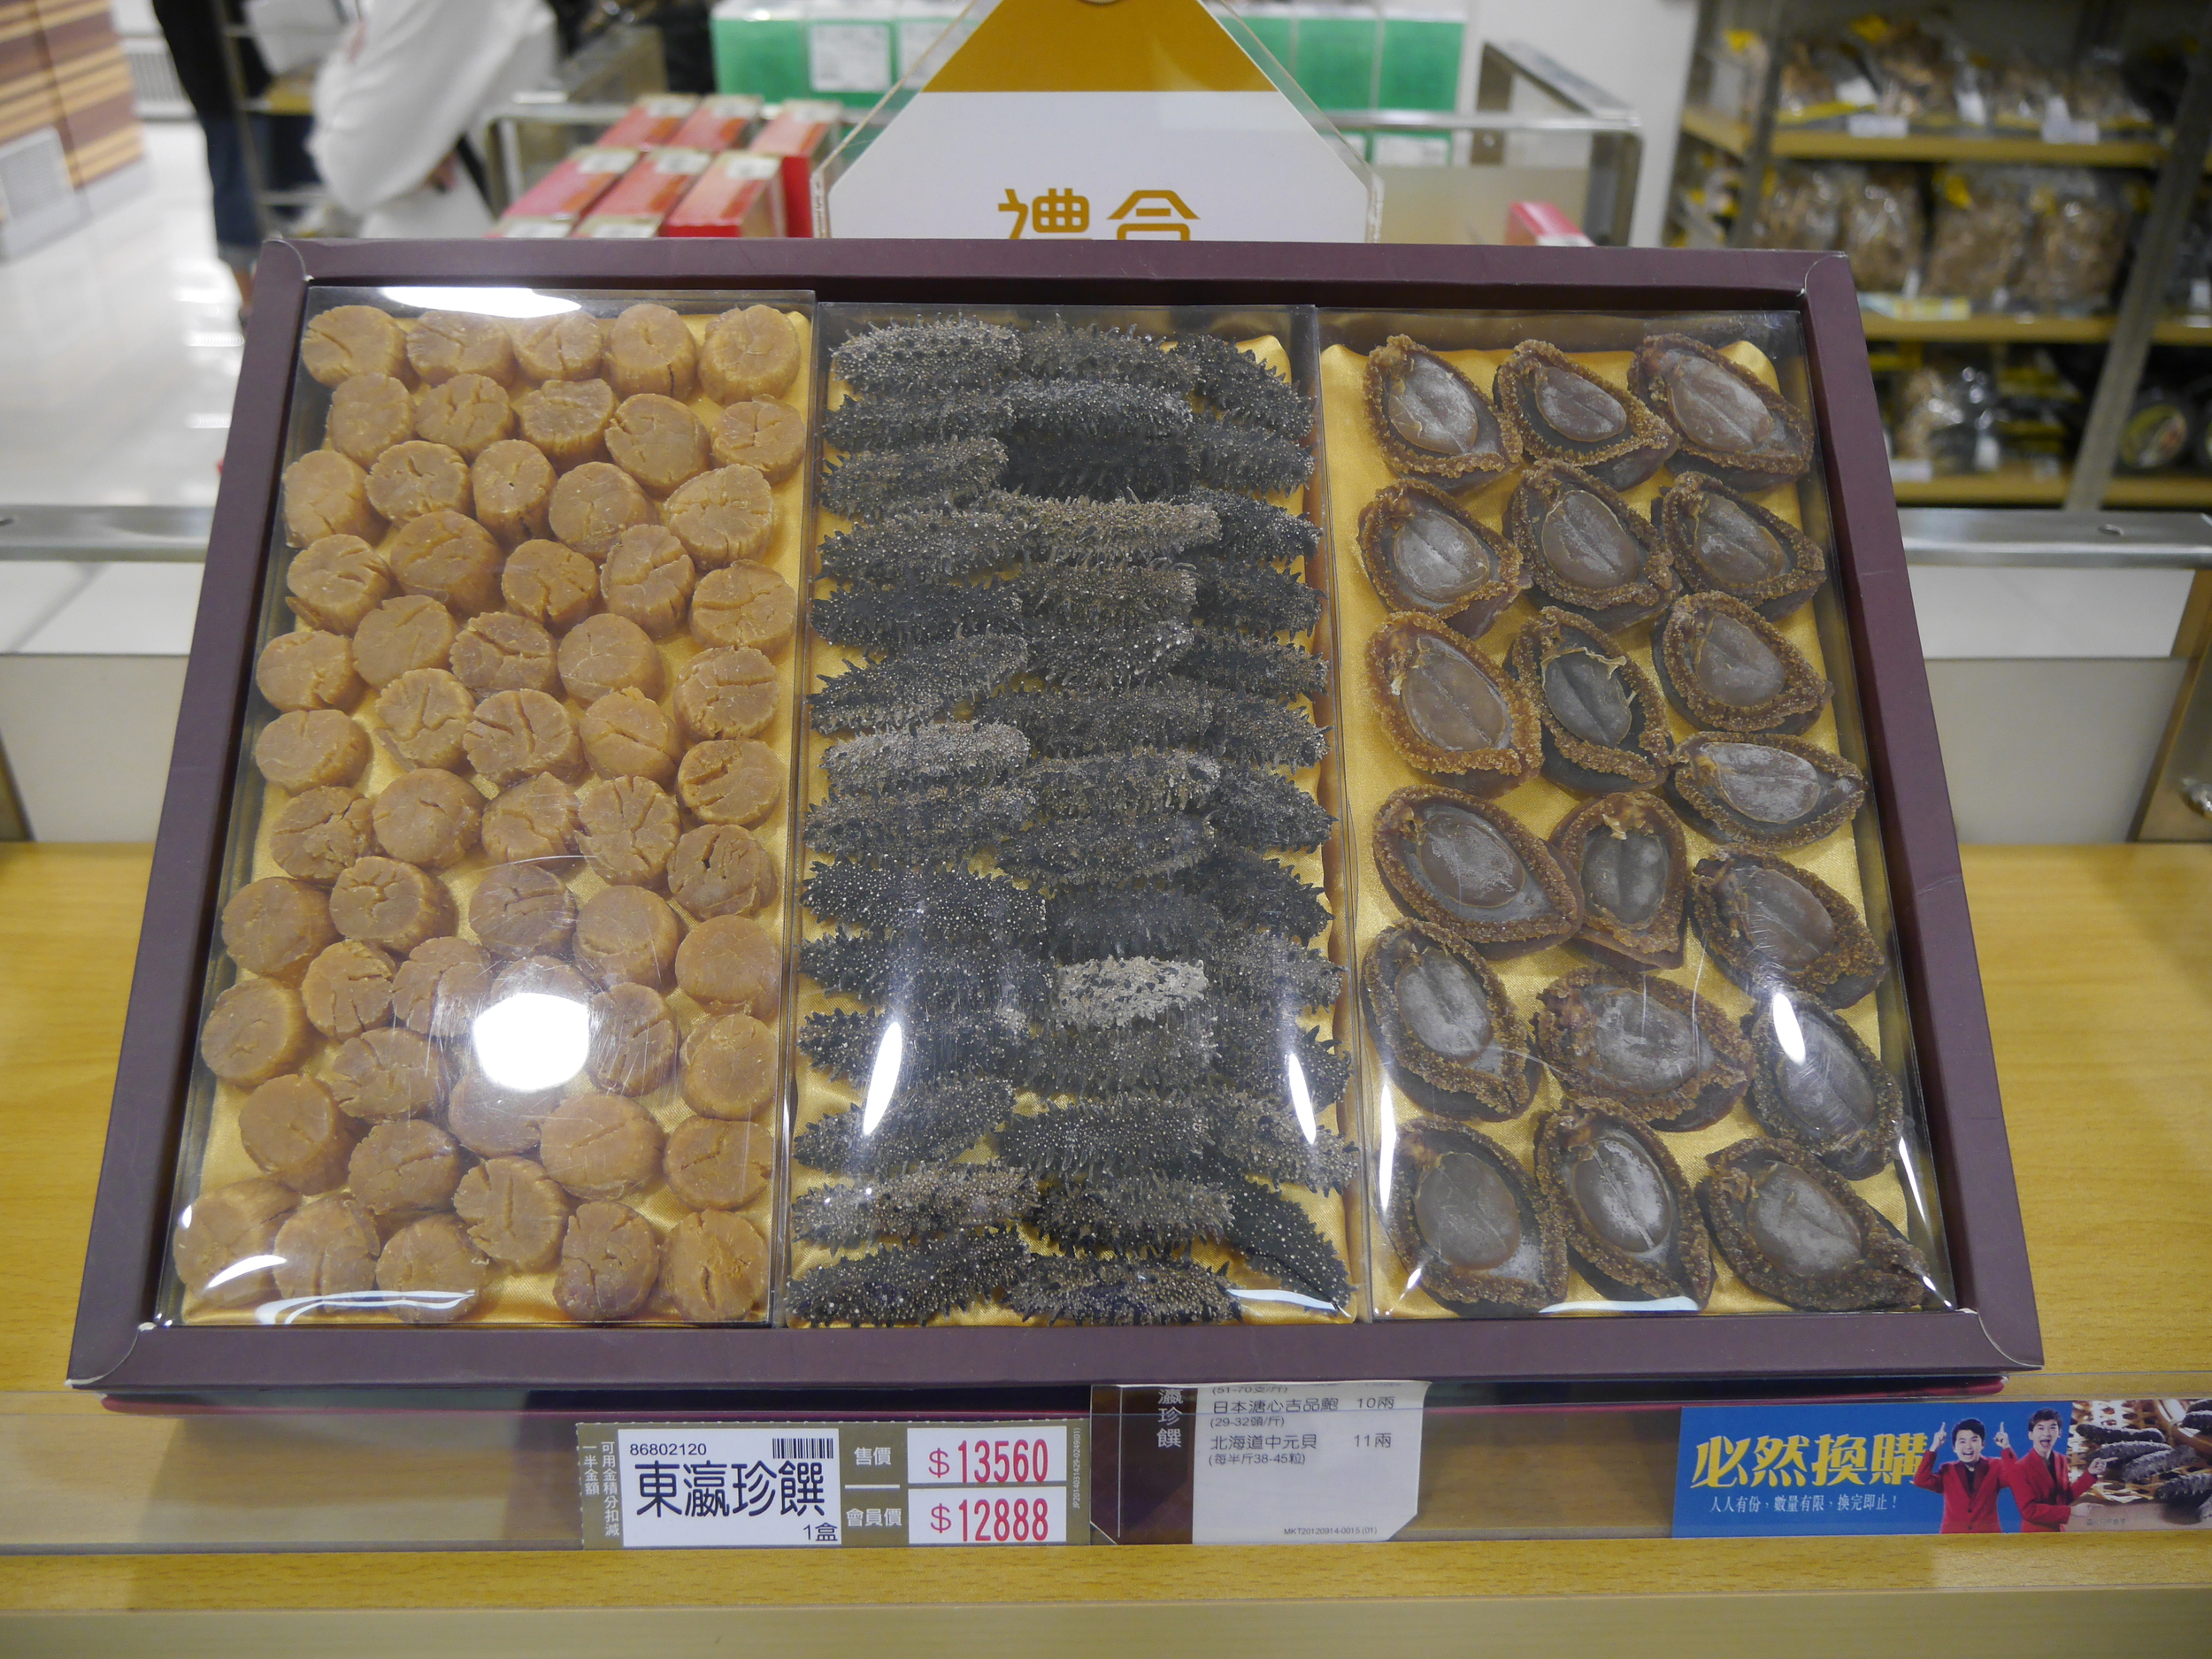 A variety pack! Scallops, sea cucumbers, and abalone. Only $1700!